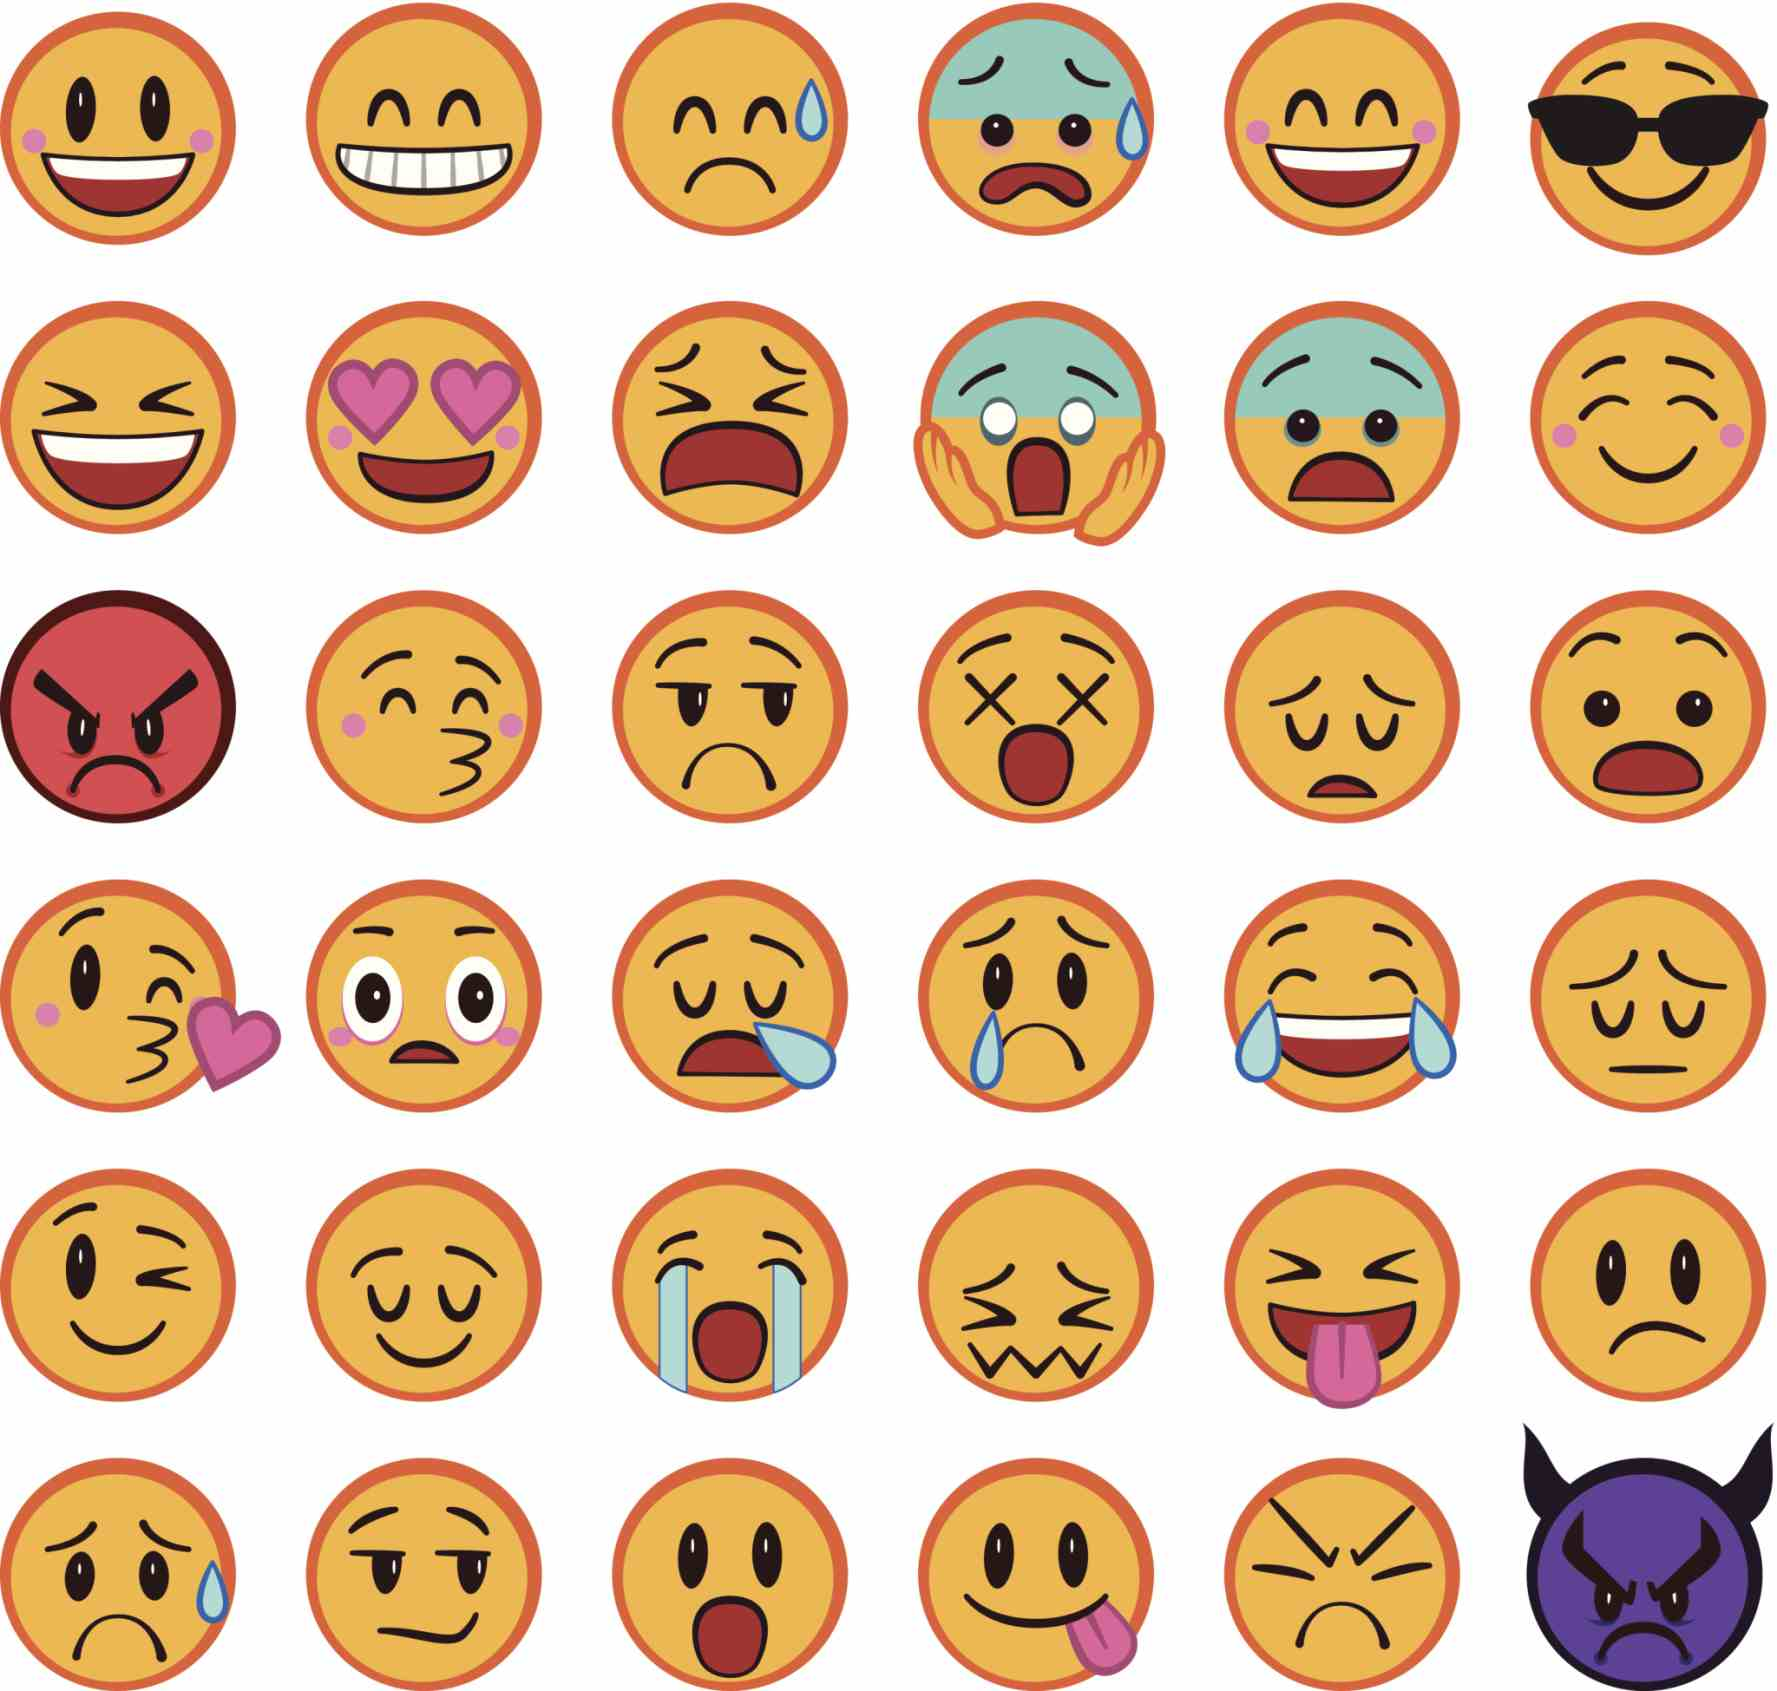 314220770e8a Emoticons - The Many Faces of the Emotional Icon. Getty Images